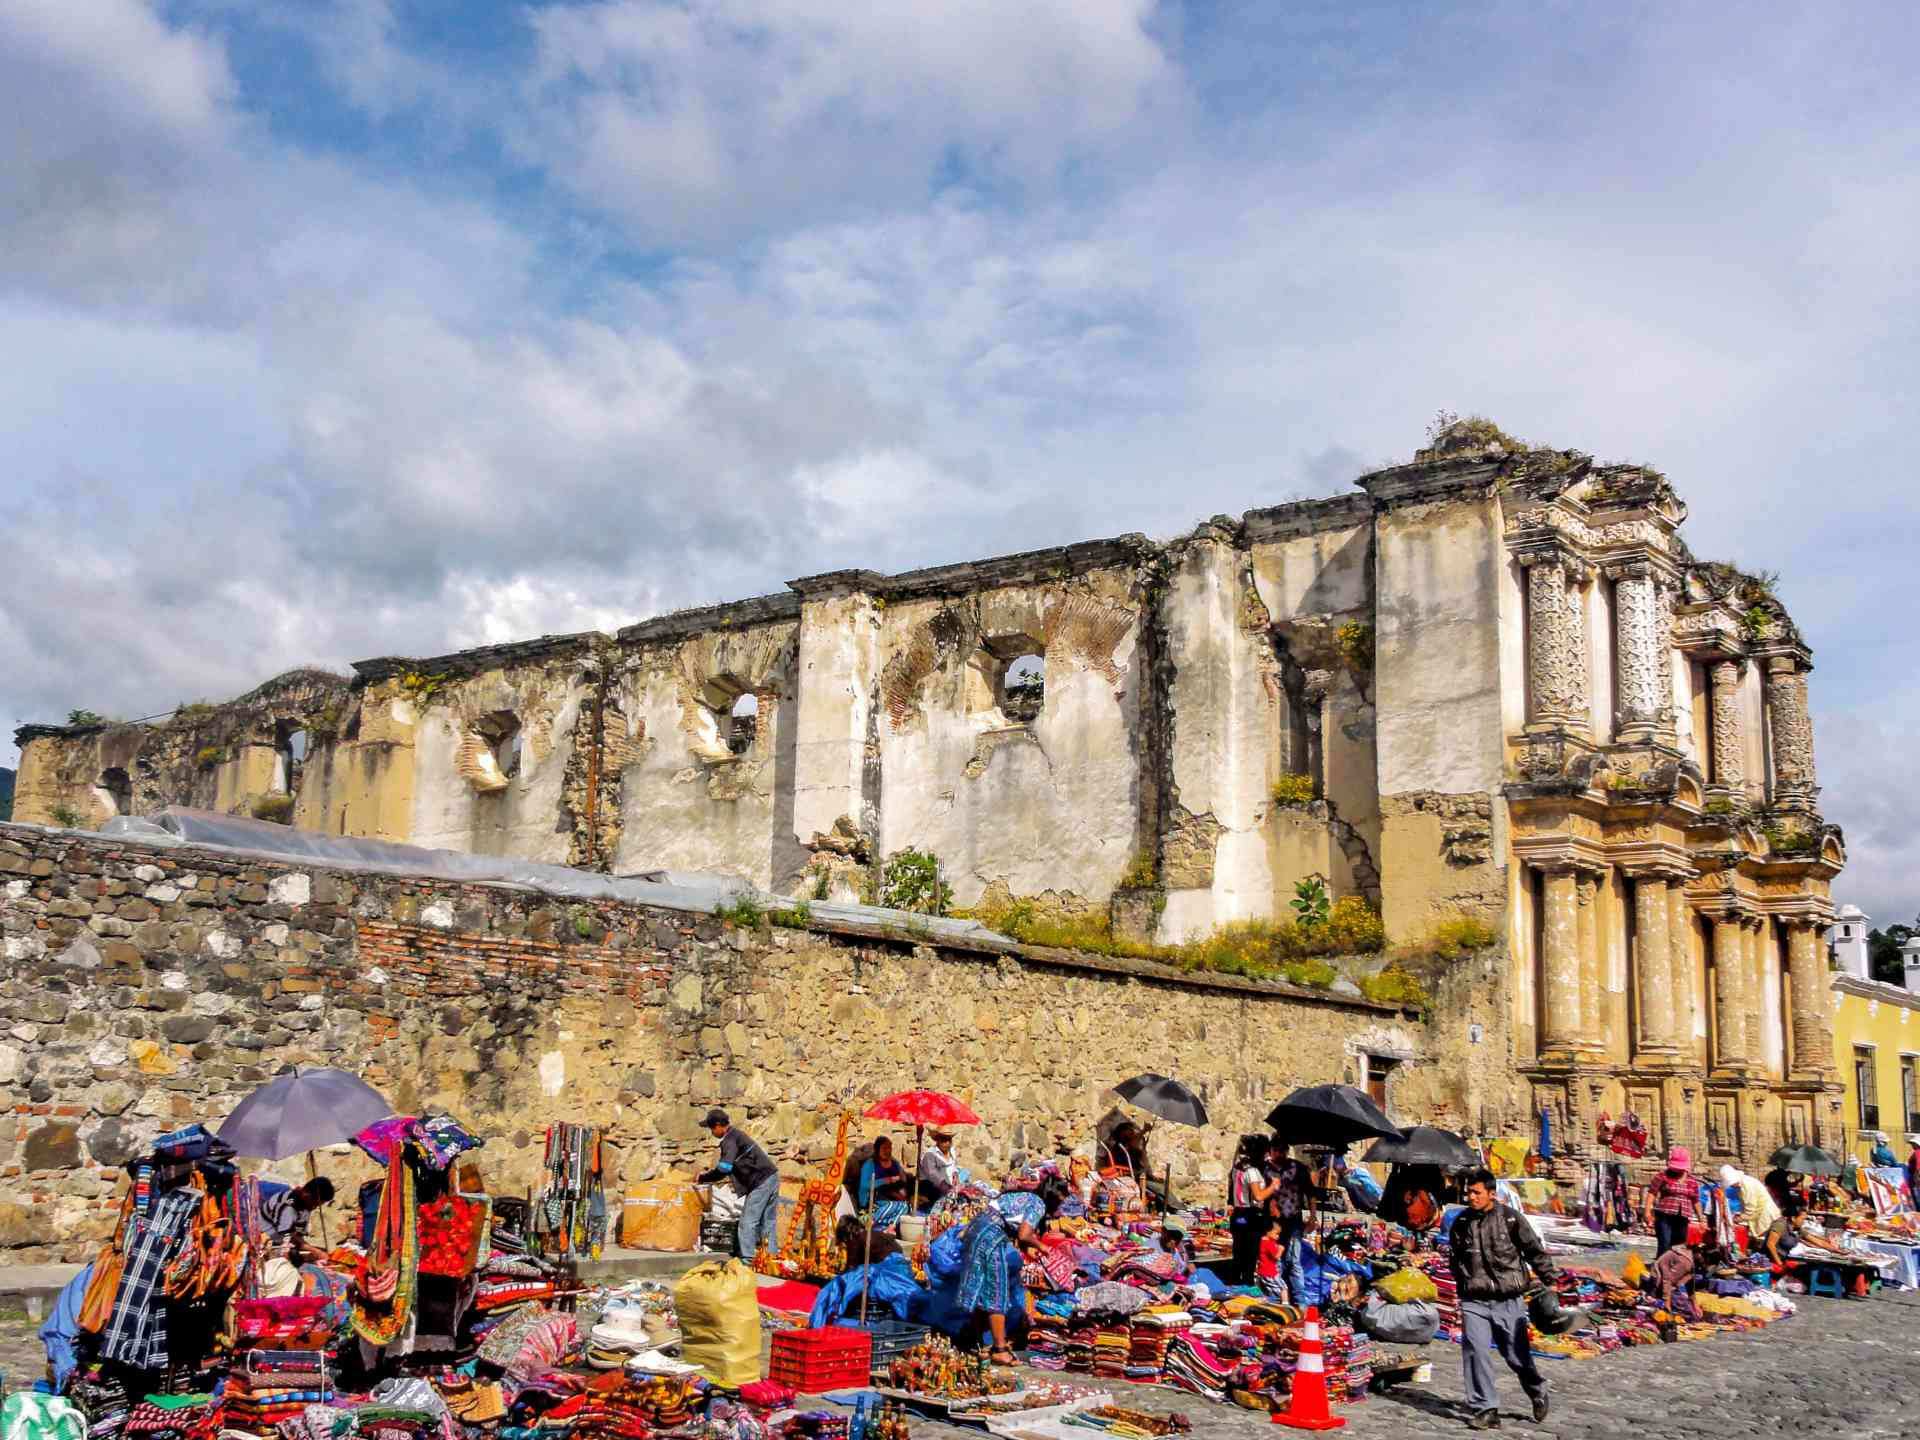 Antigua Markets, Guatemala by Jeremy van Heerde